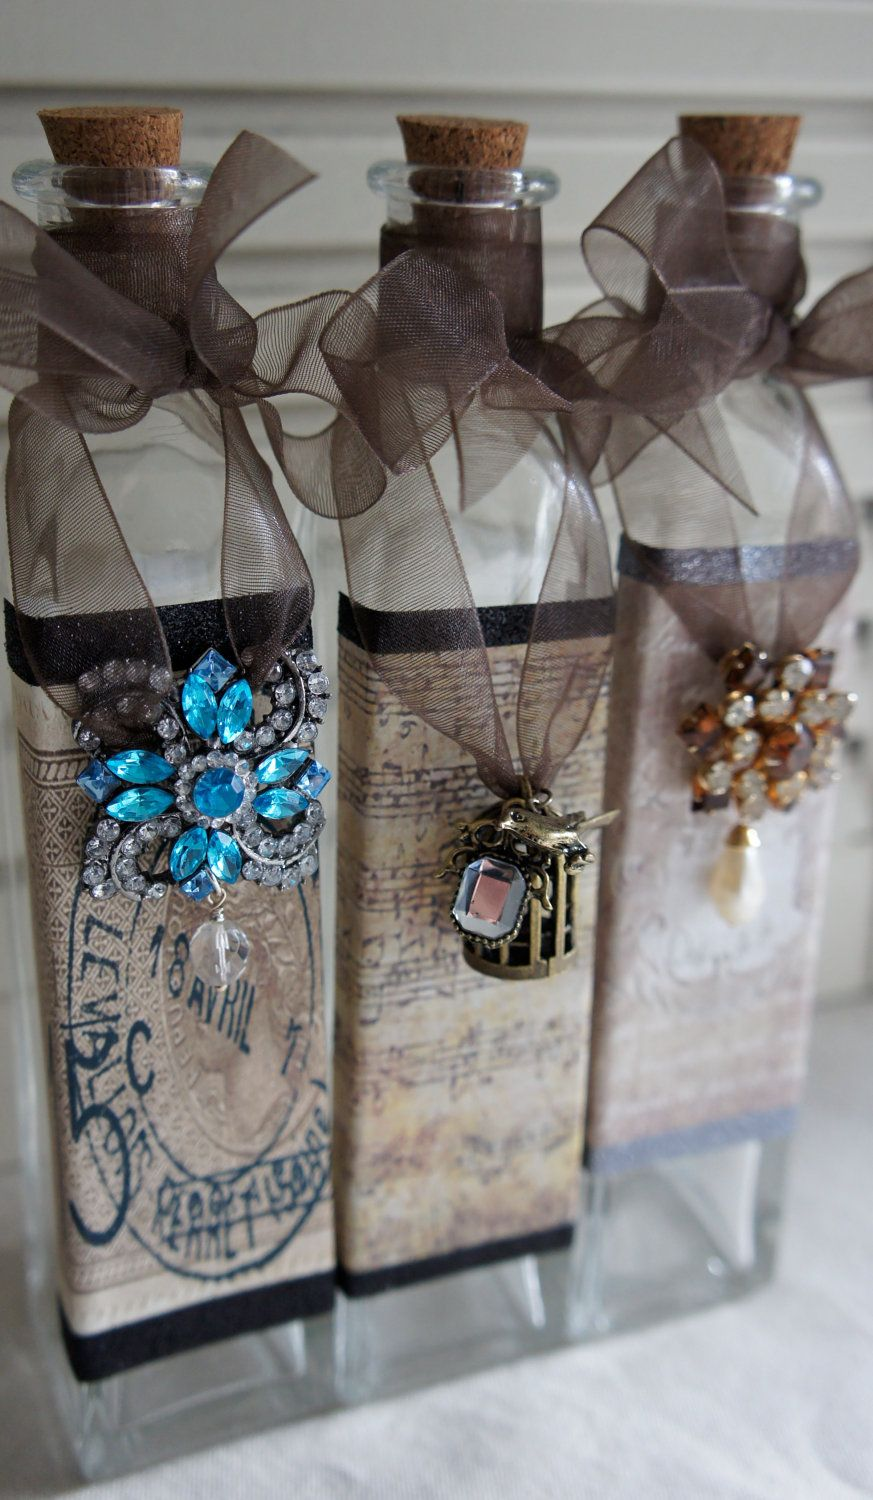 Decorate A Bottle Decorative Bottle With Vintage French Accents Going To Do This